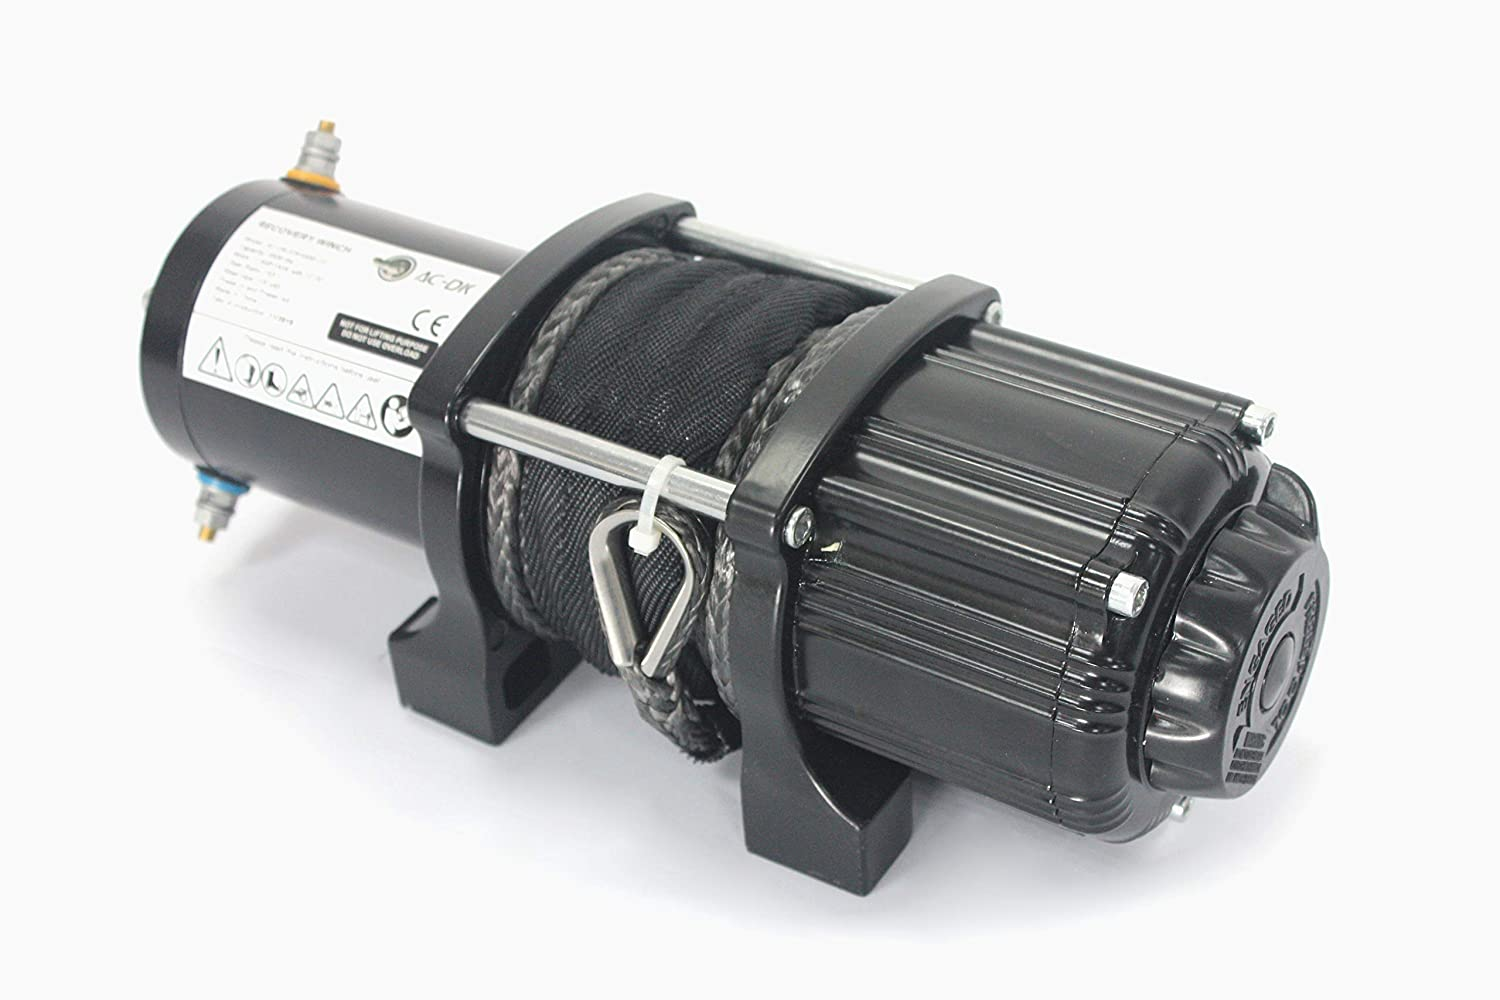 4500lb Winch with Cable AC-DK 12V 4500lb ATV Winch UTV Winch Electric Winch Set for 4x4 Off Road